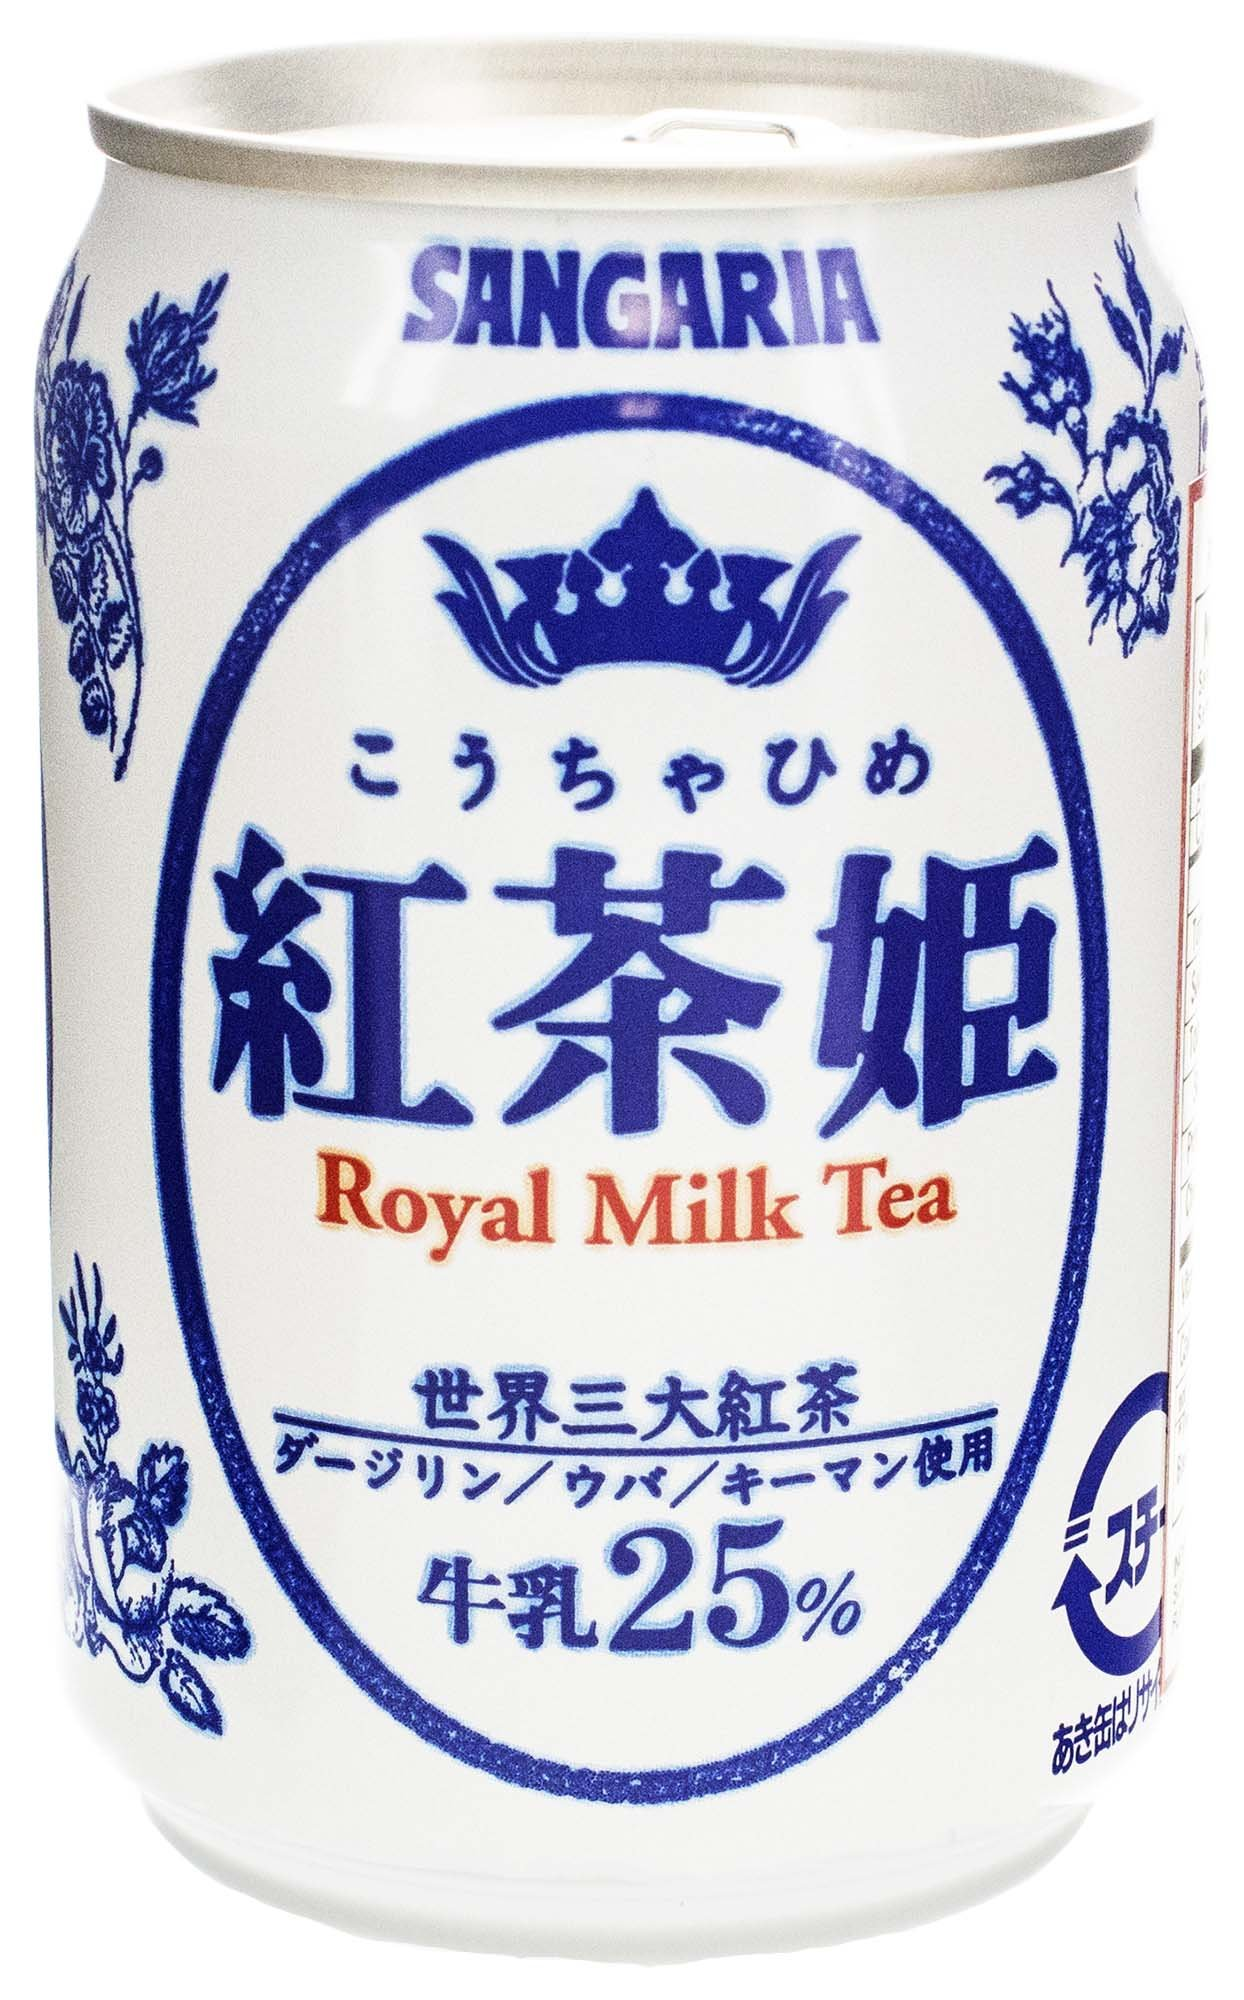 Sangaria Royal Milk Tea, 9.47 Fluid Ounce (Pack of 24) by Sangaria